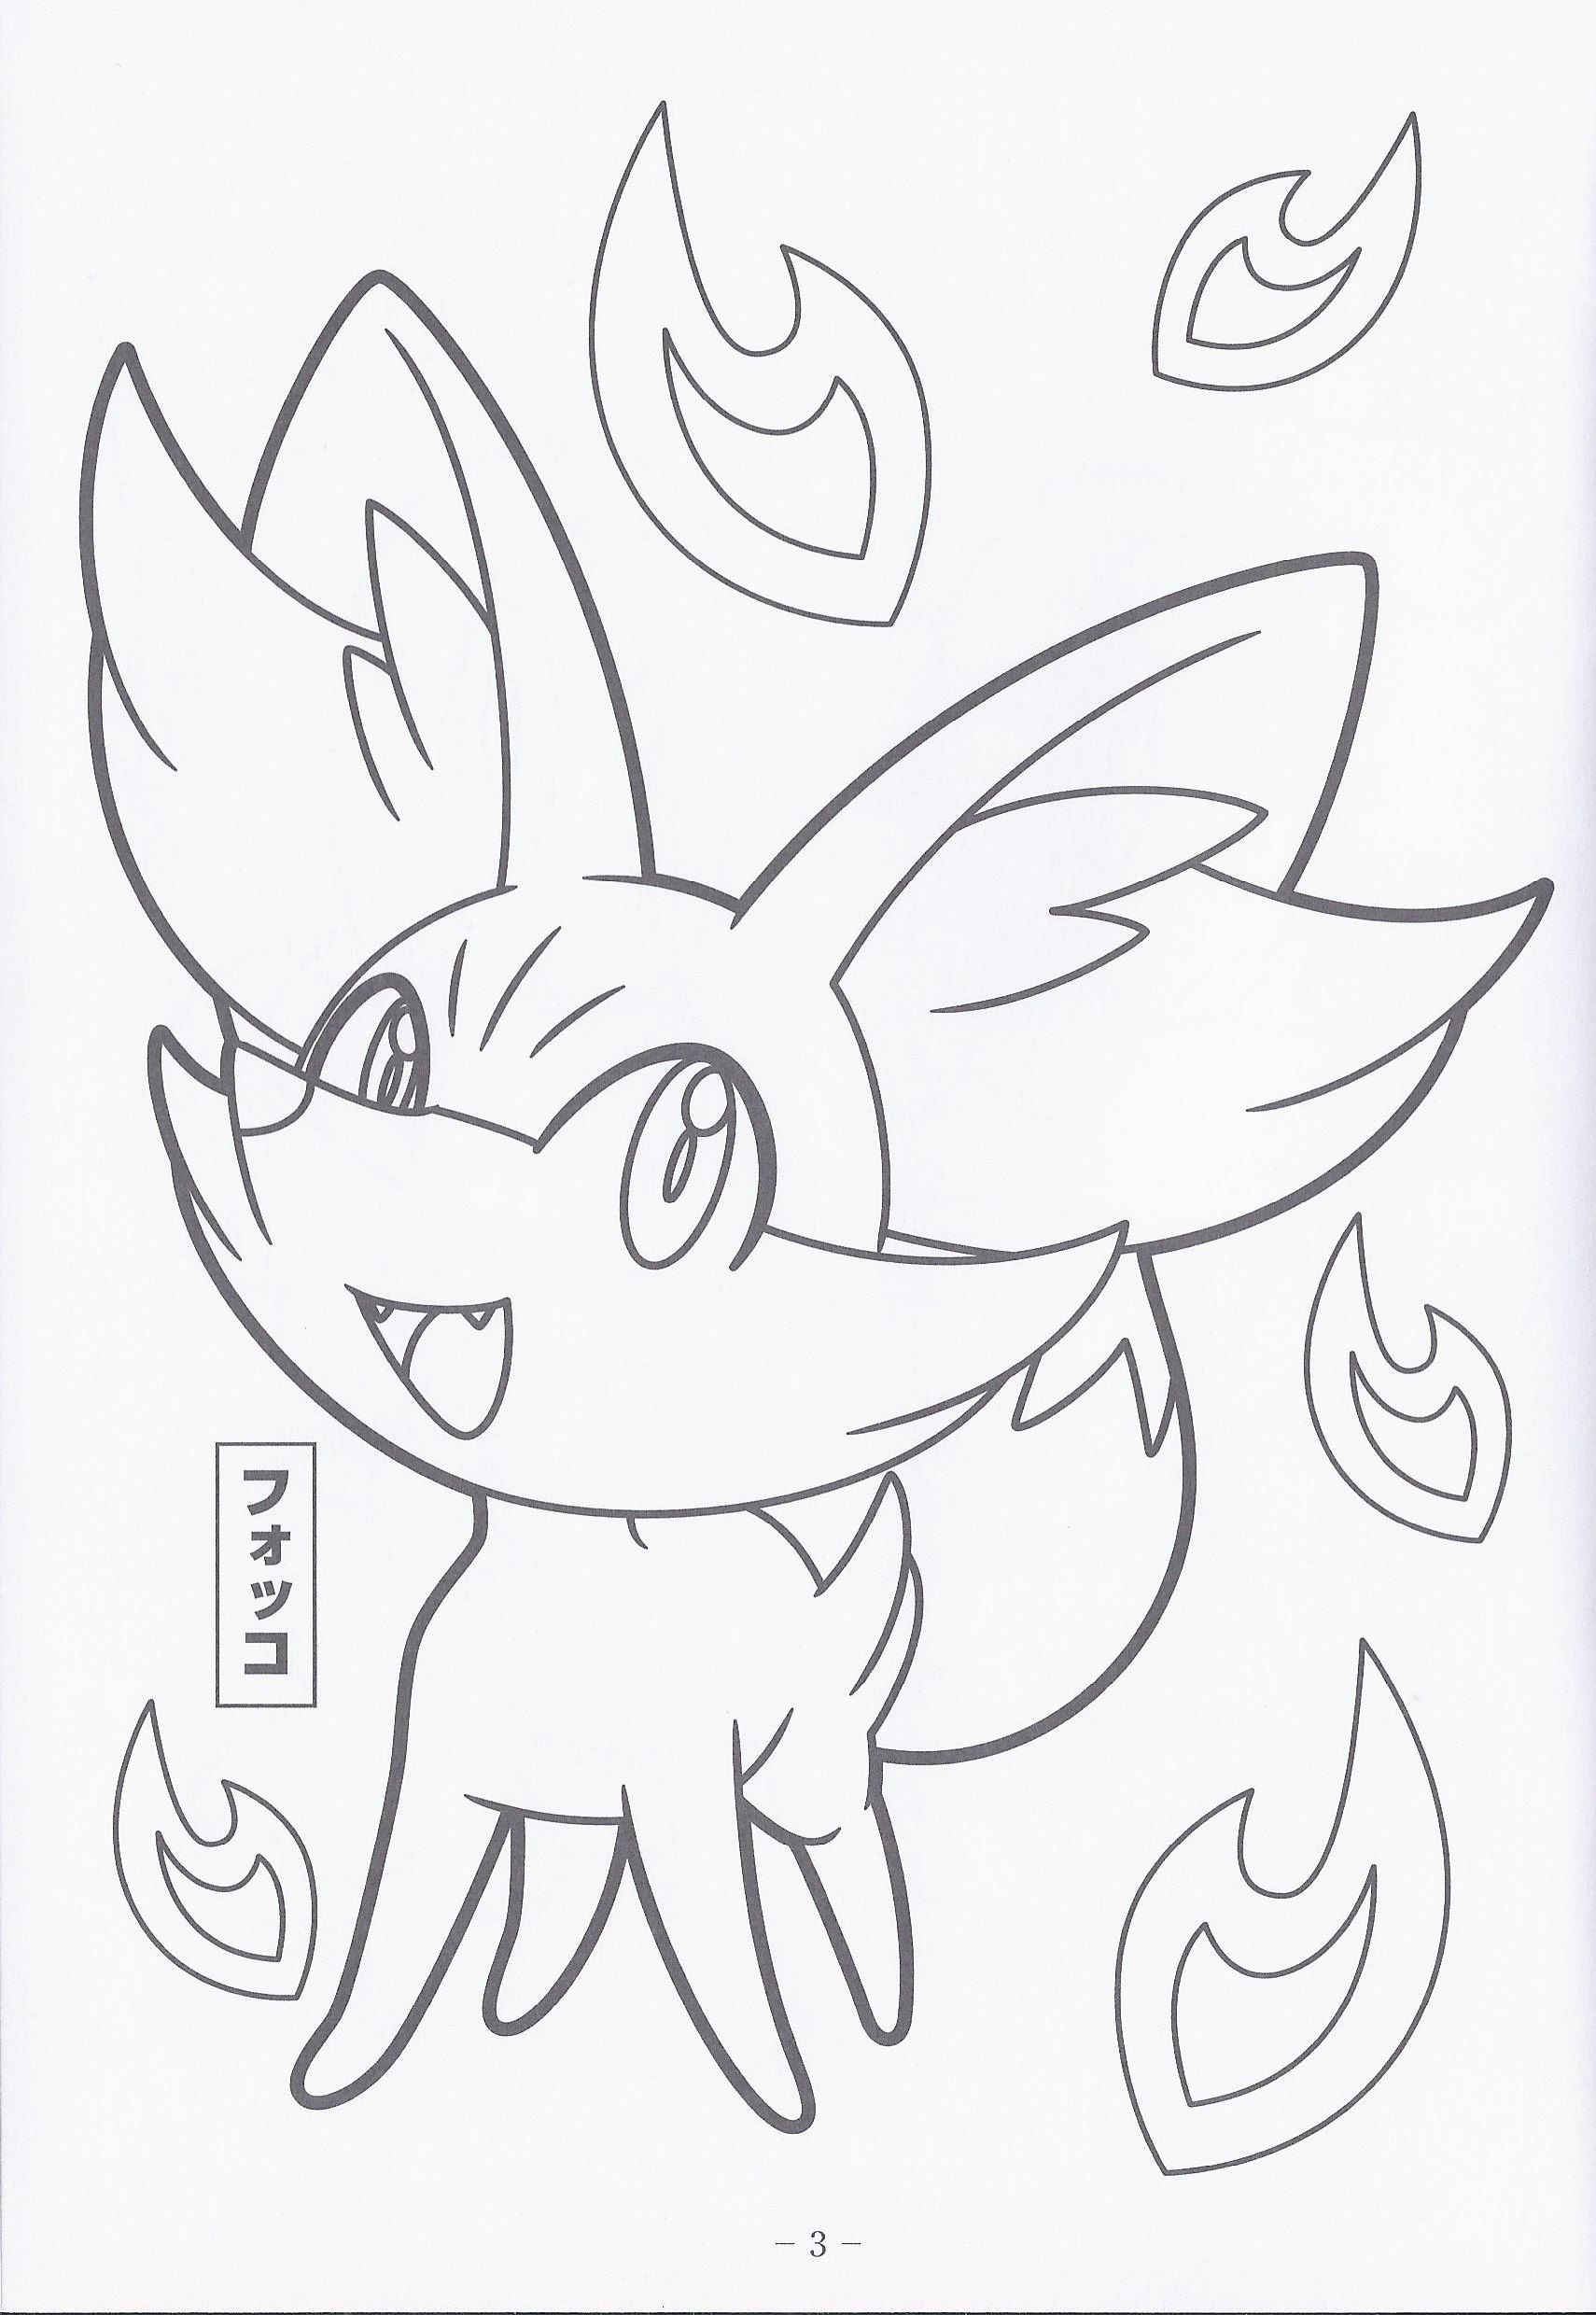 Pin By Leia Bess On Color Pokemon Coloring B W Line Art Pages Pokemon Coloring Pages Coloring Pages Pokemon Coloring